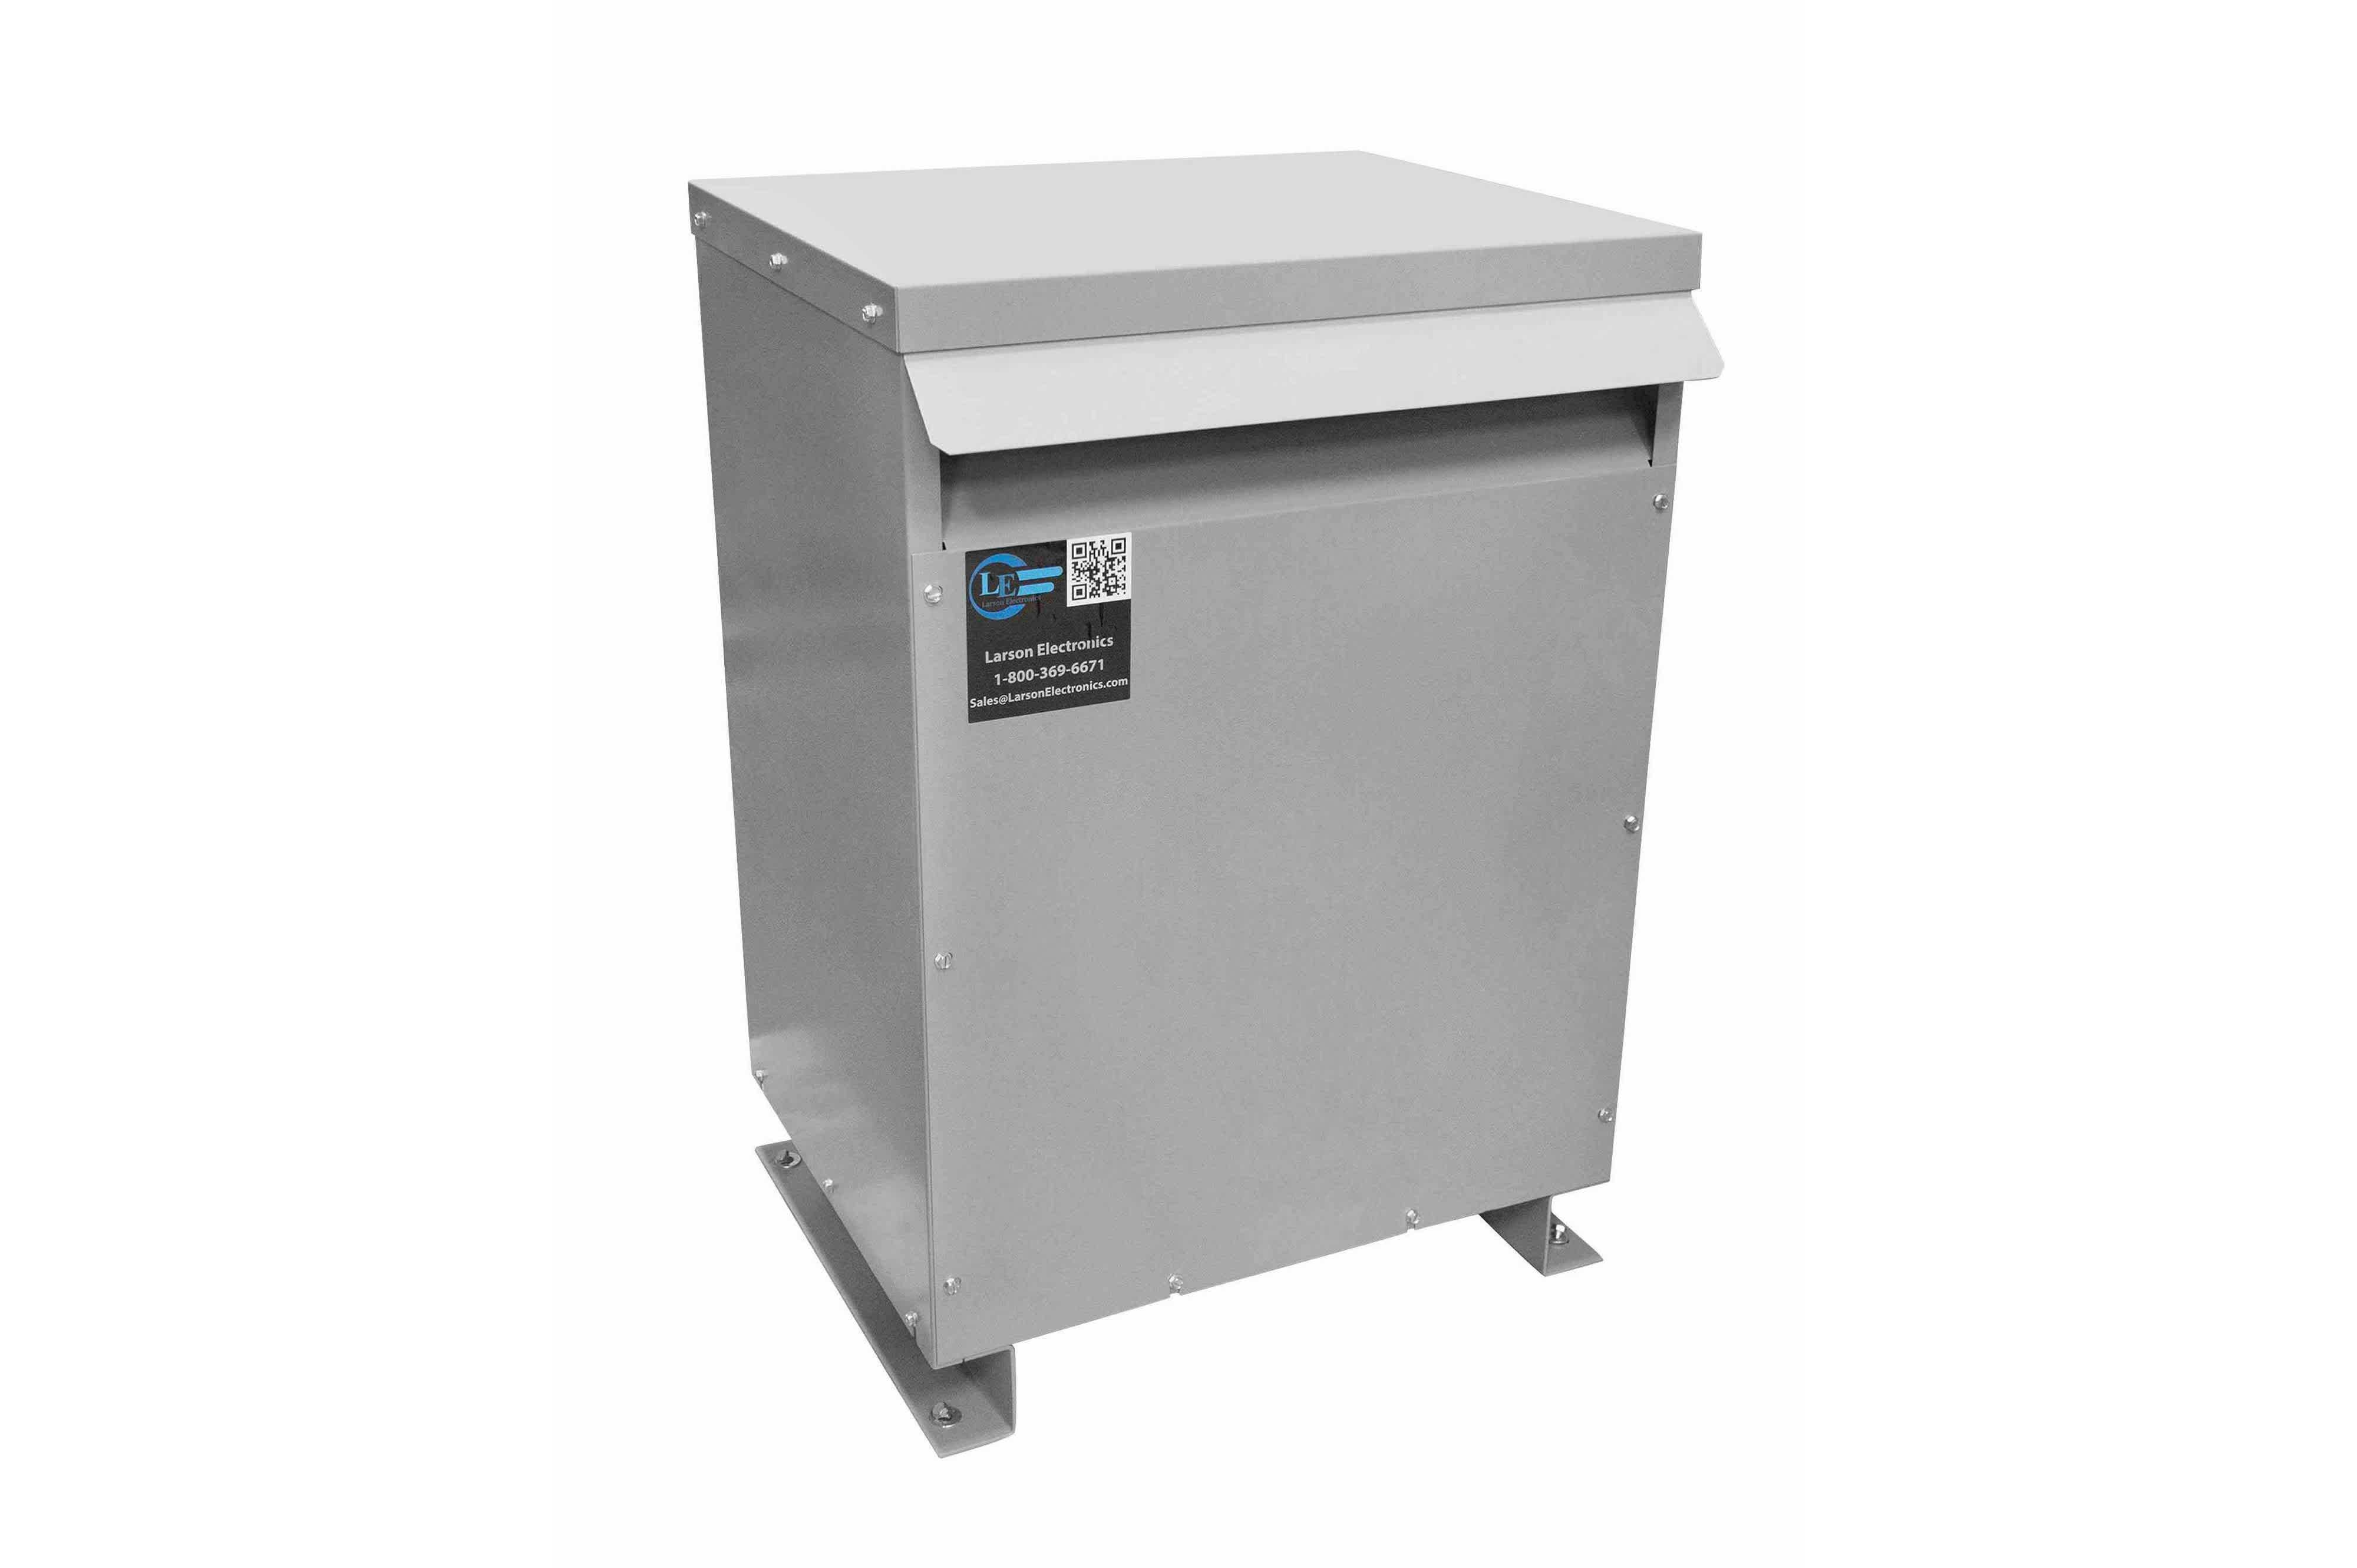 45 kVA 3PH Isolation Transformer, 480V Delta Primary, 400V Delta Secondary, N3R, Ventilated, 60 Hz